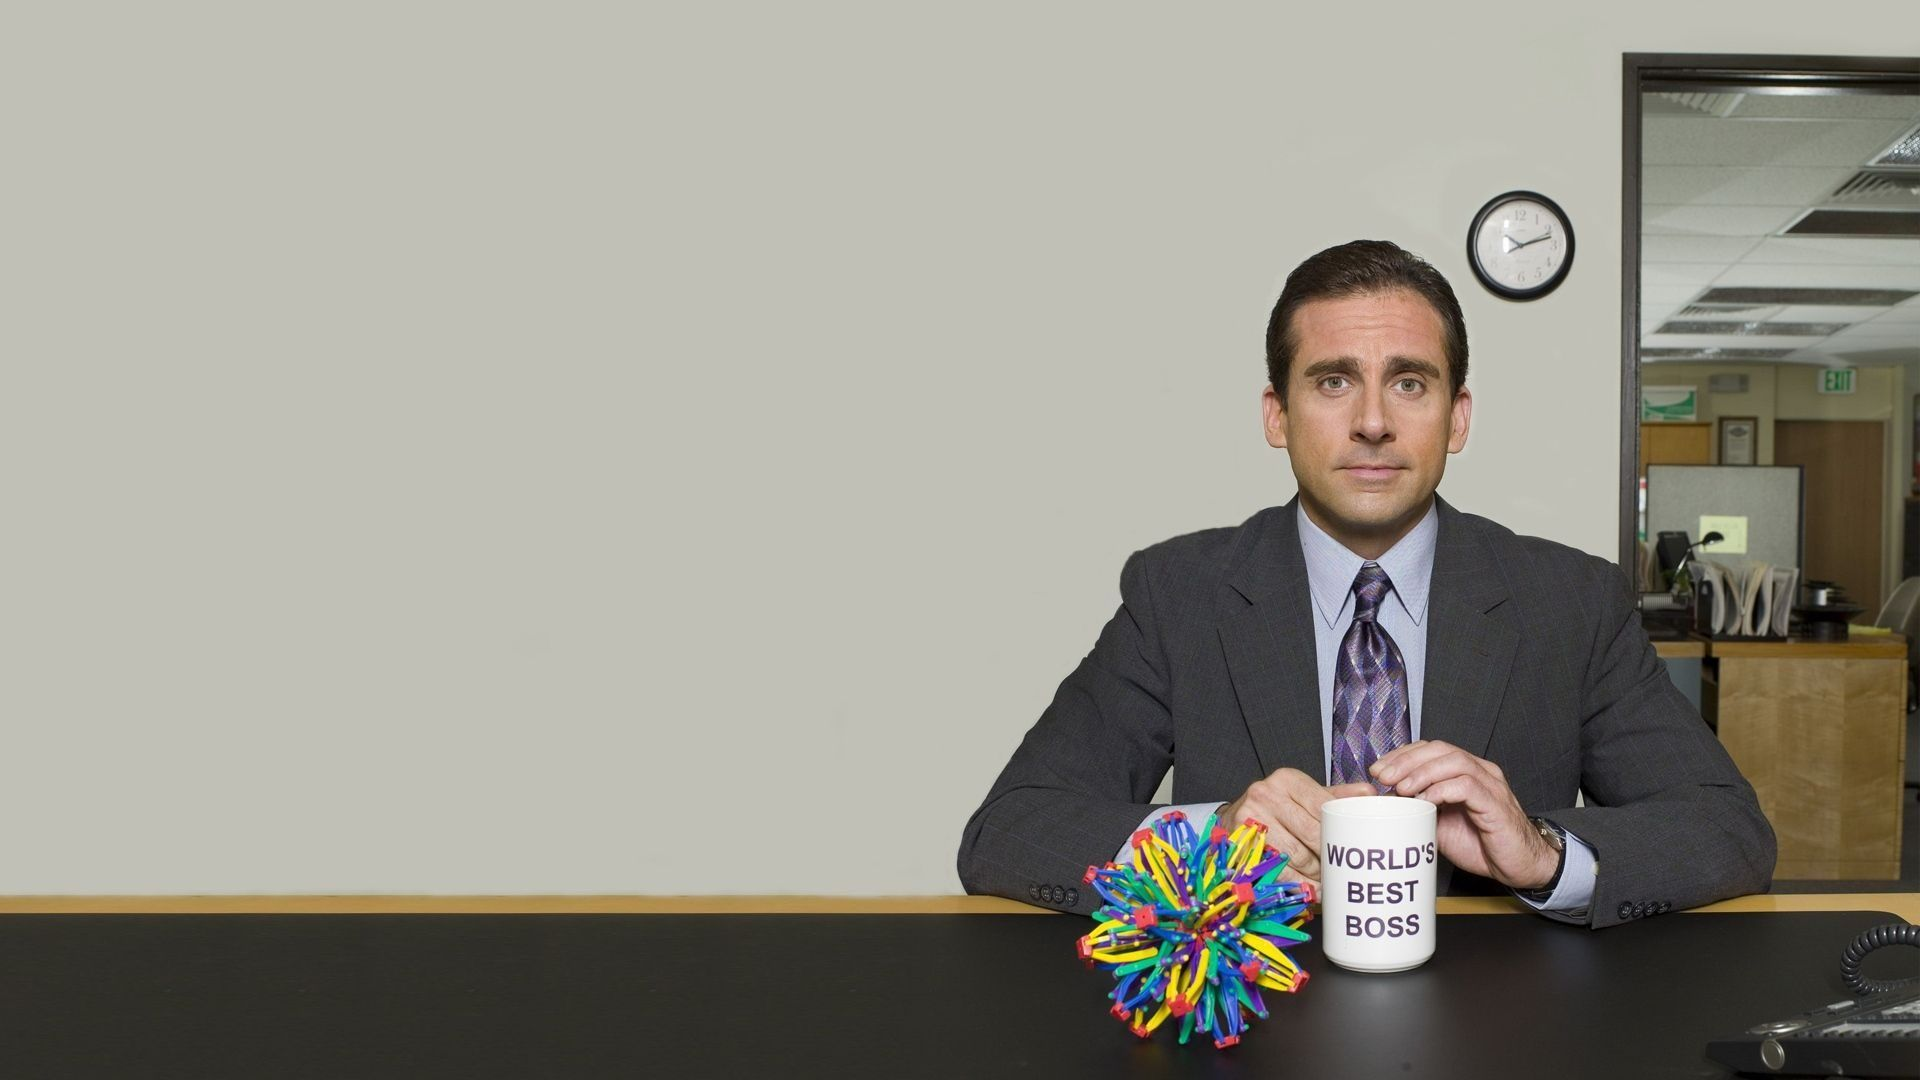 Michael Scott Wallpapers Top Free Michael Scott